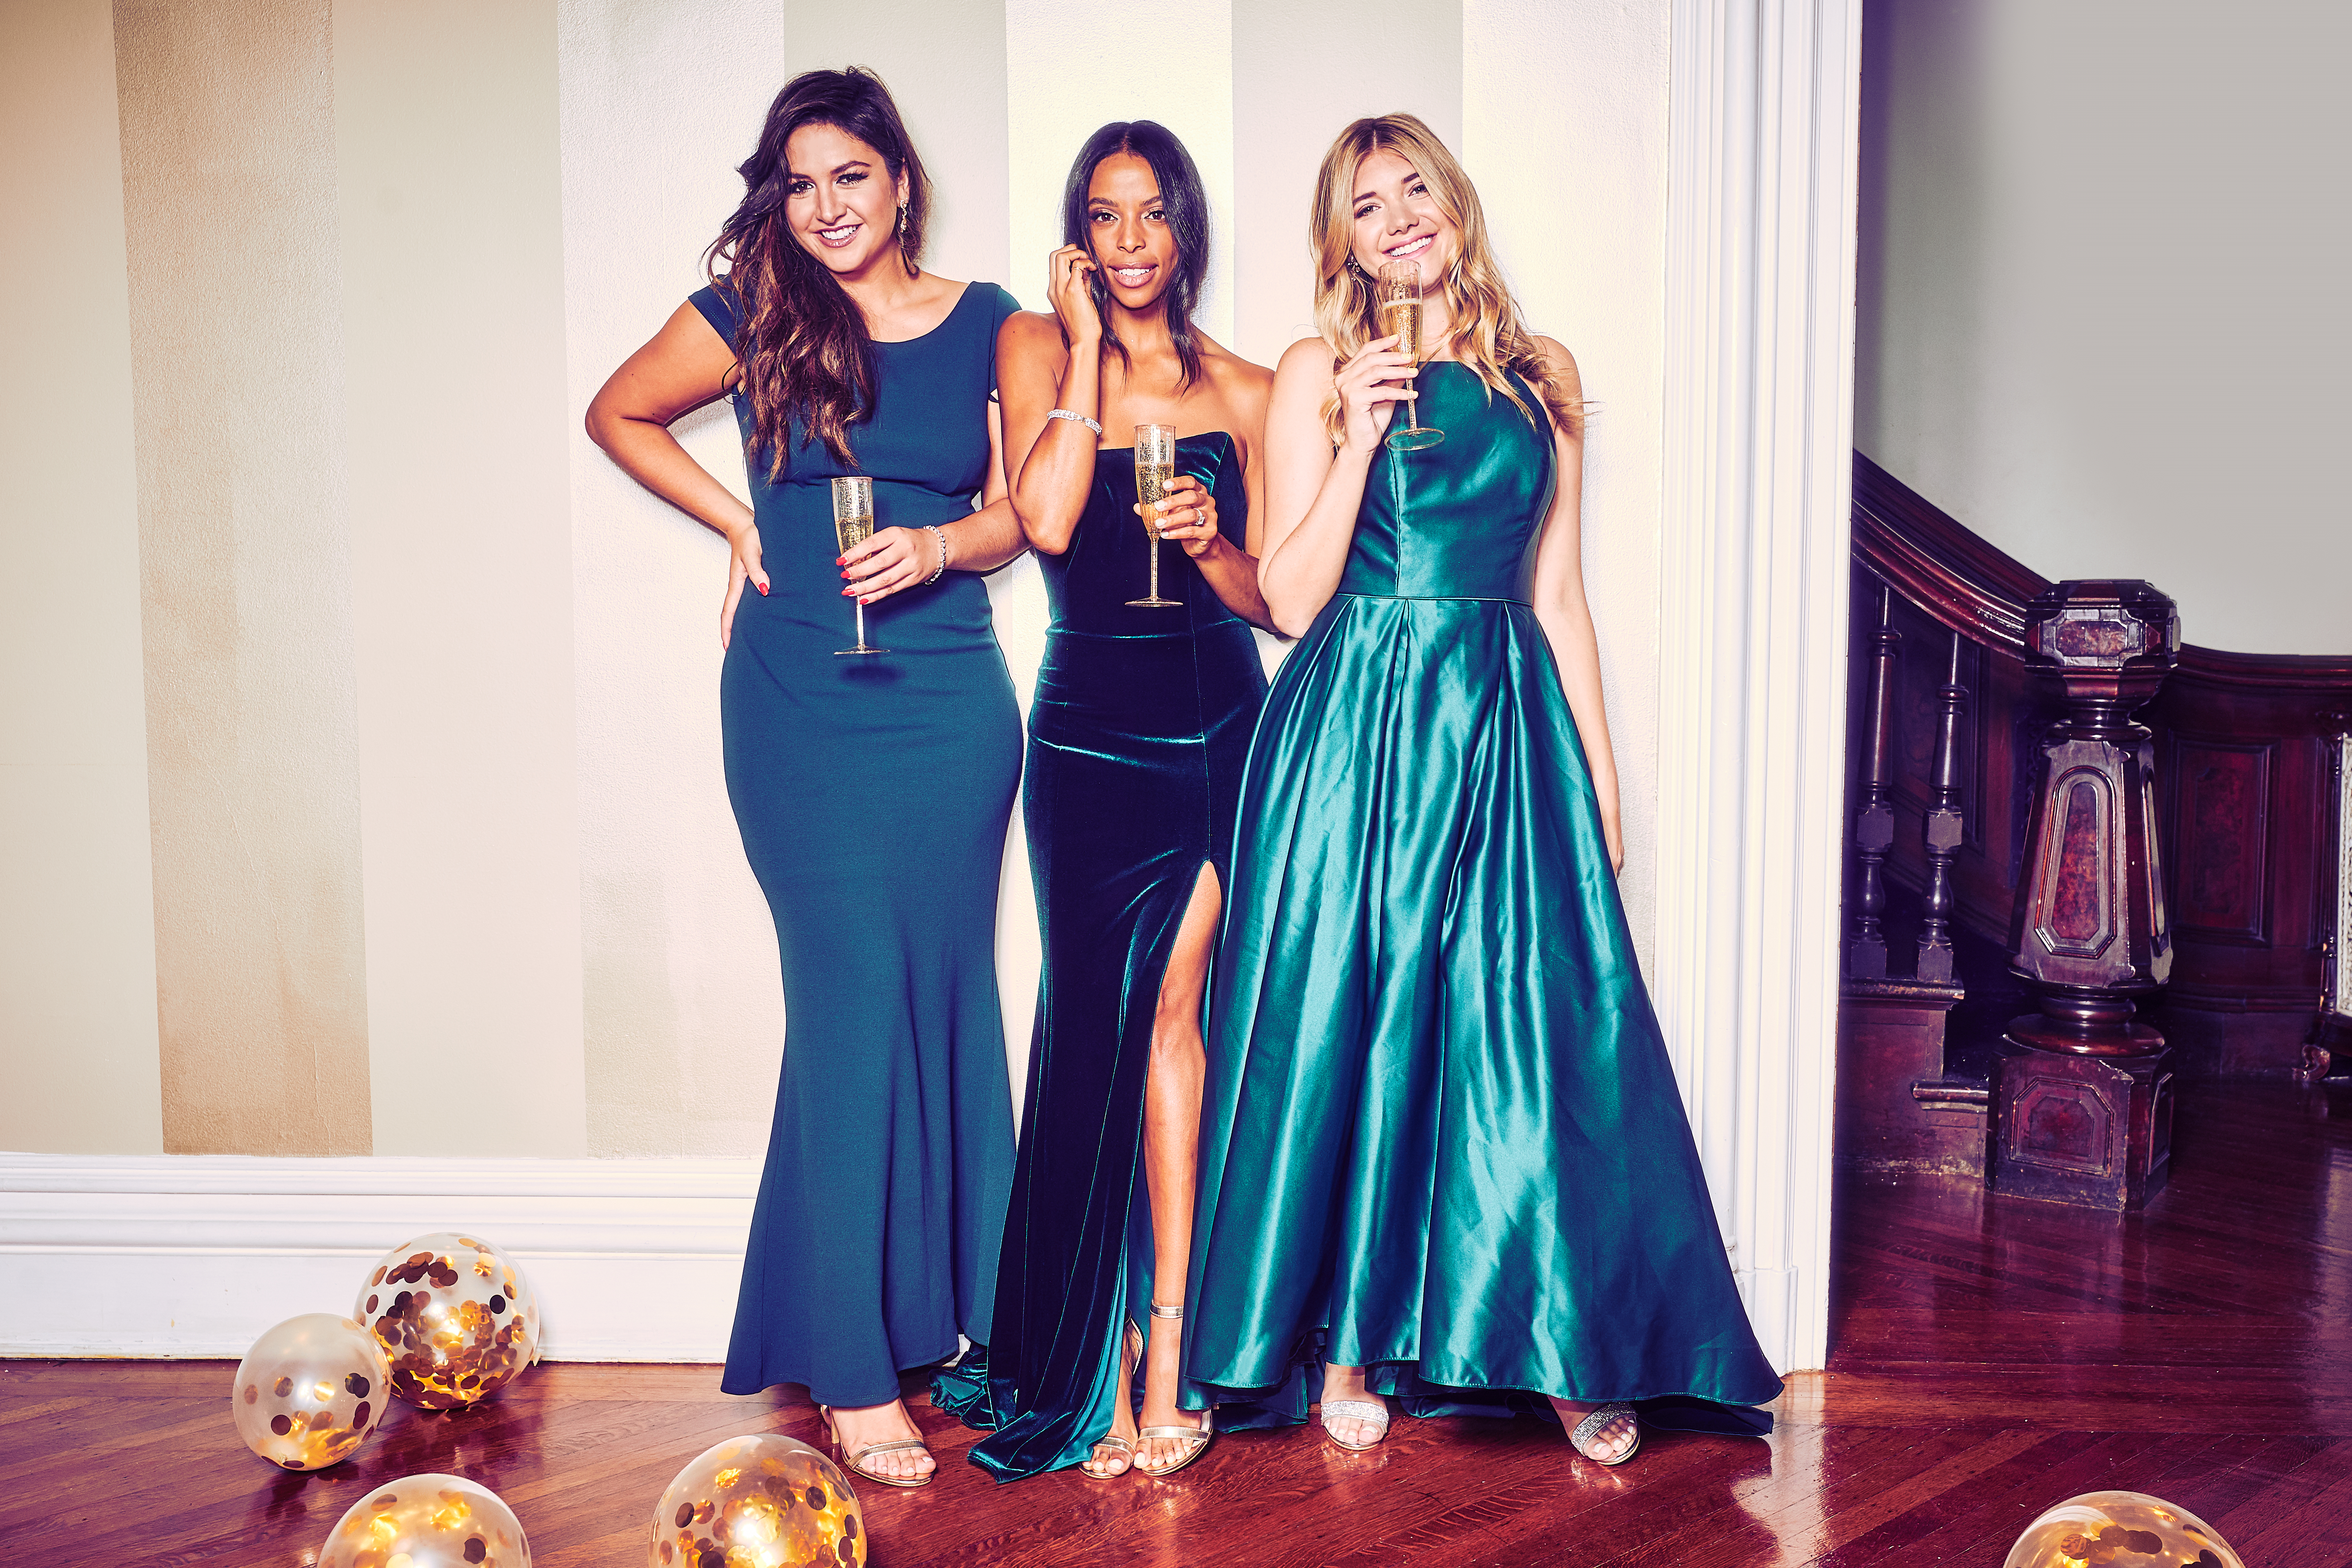 @lexicon of style @waityouneedthis @honestlykate in the hottest dress color of the season: green!